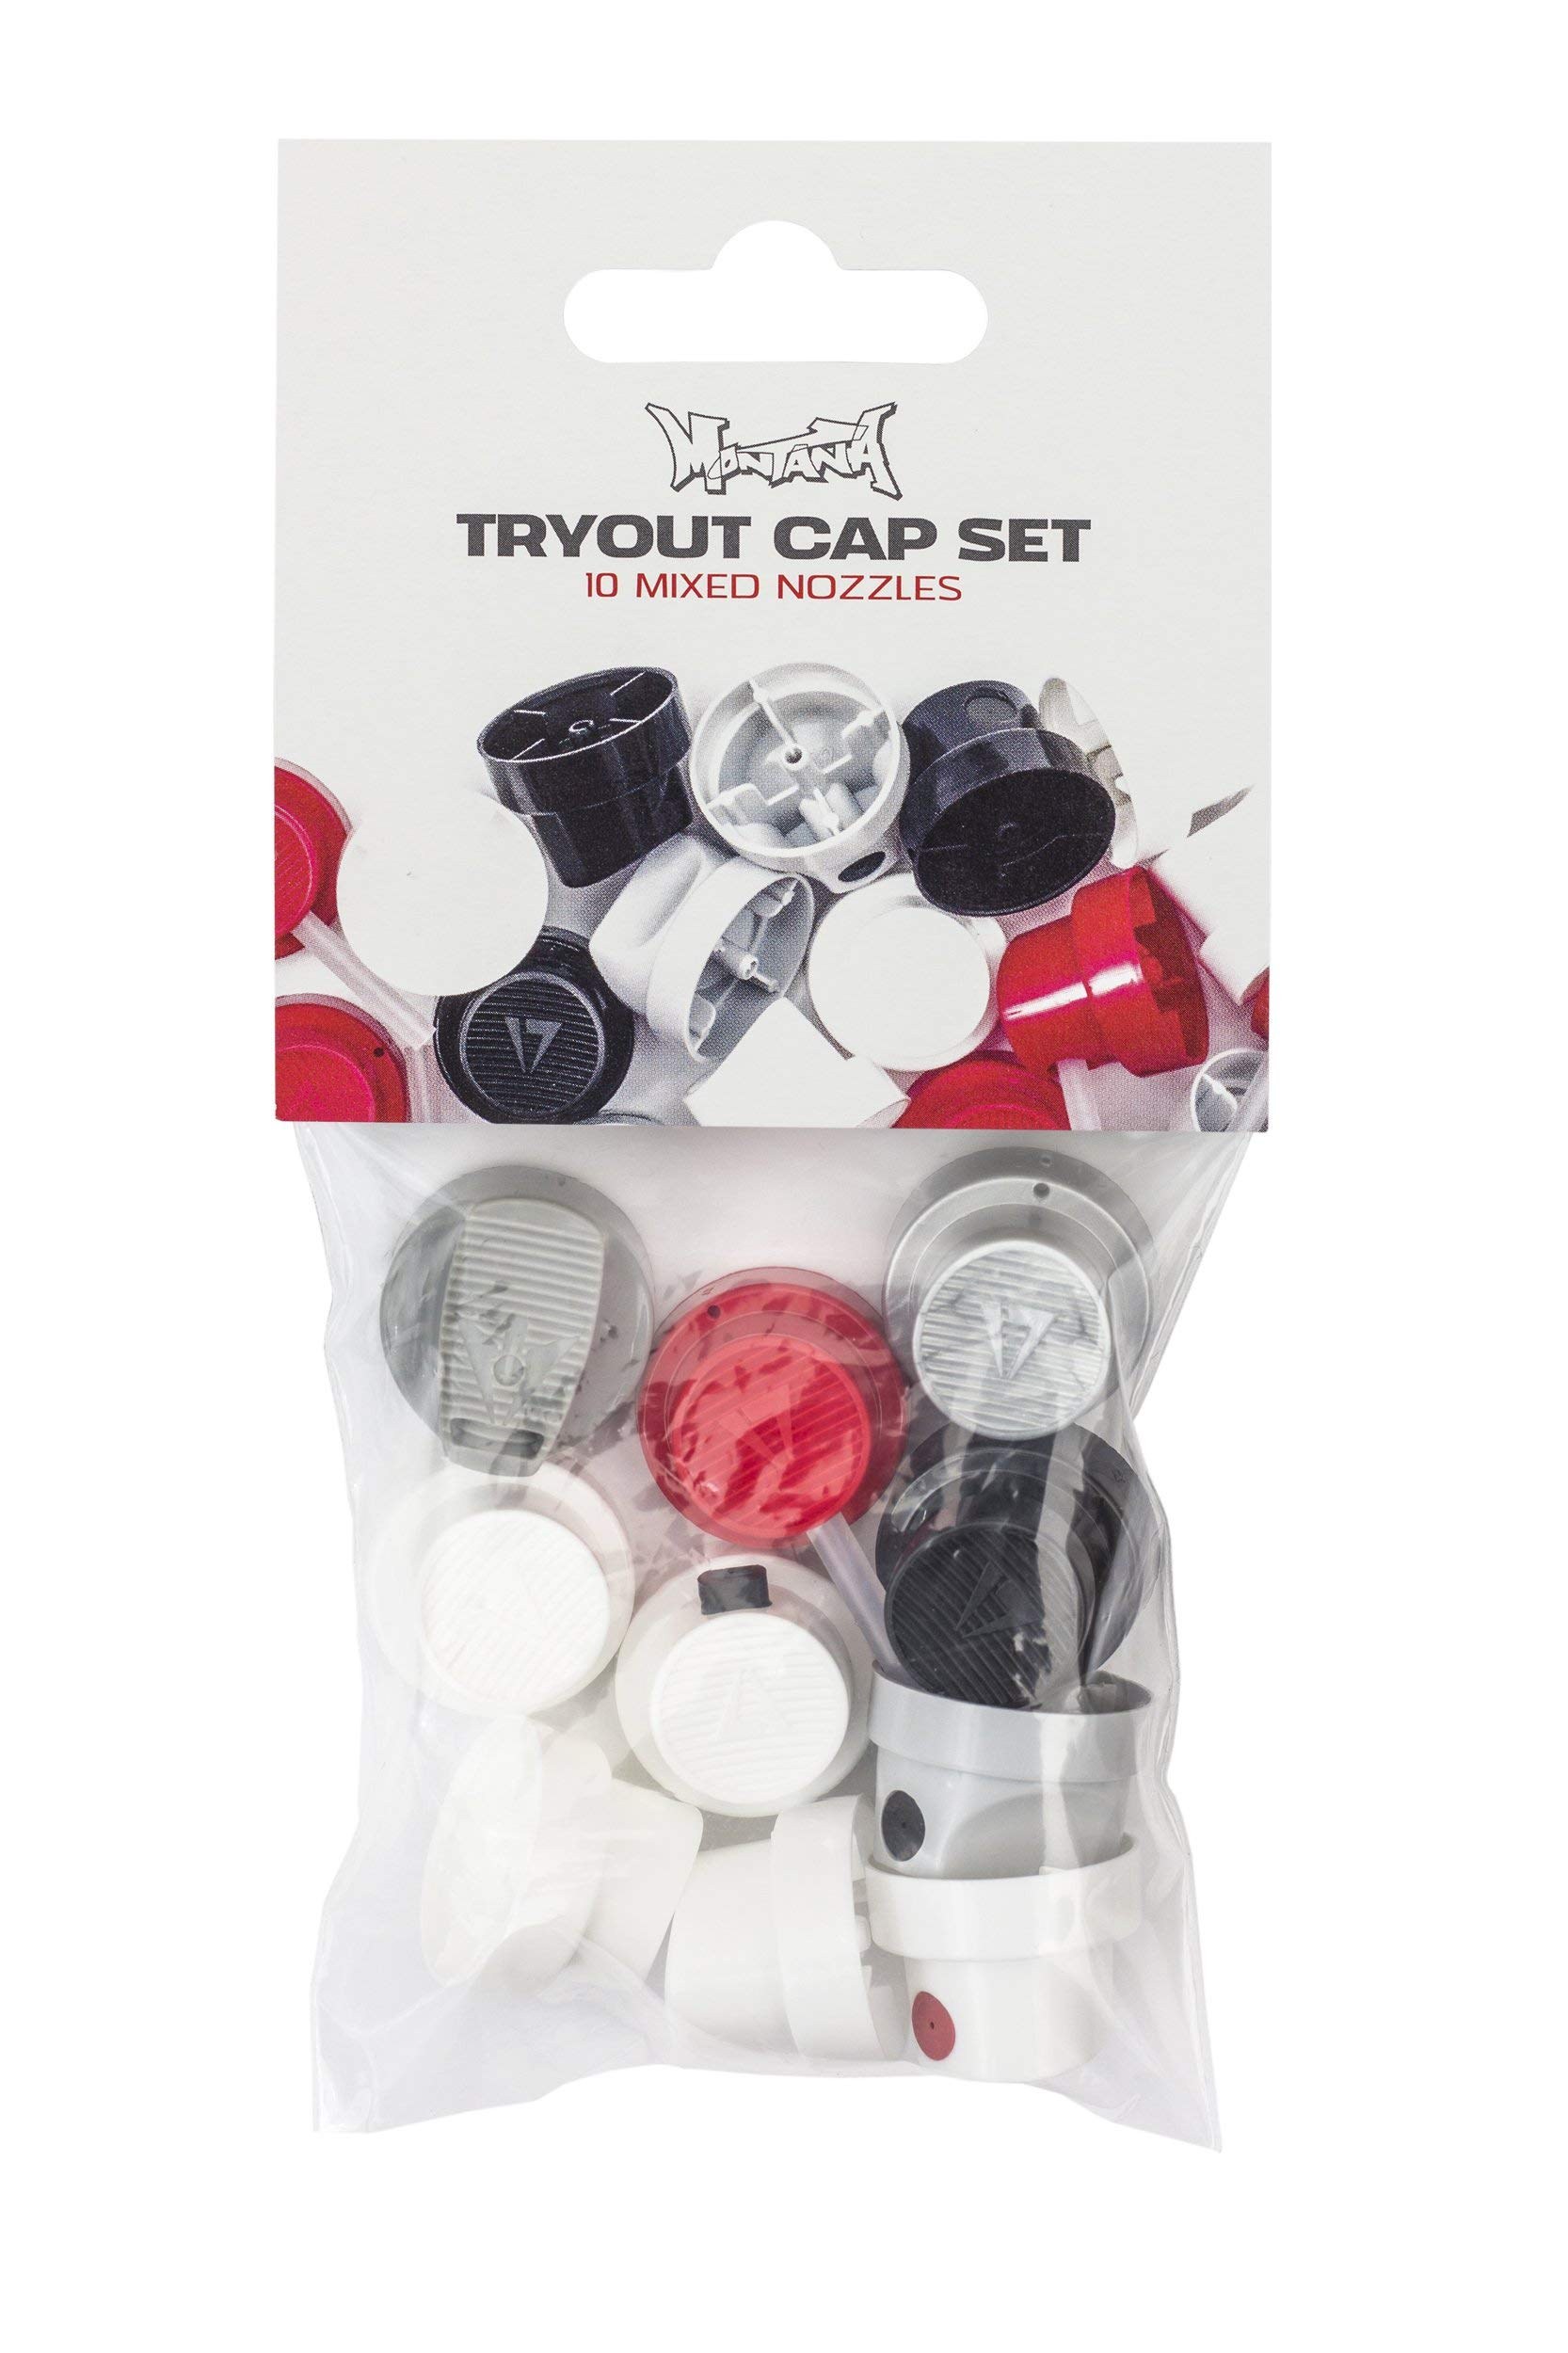 Montana Cans Montana GOLD 10 Tryout Capset Spray Paint Cap